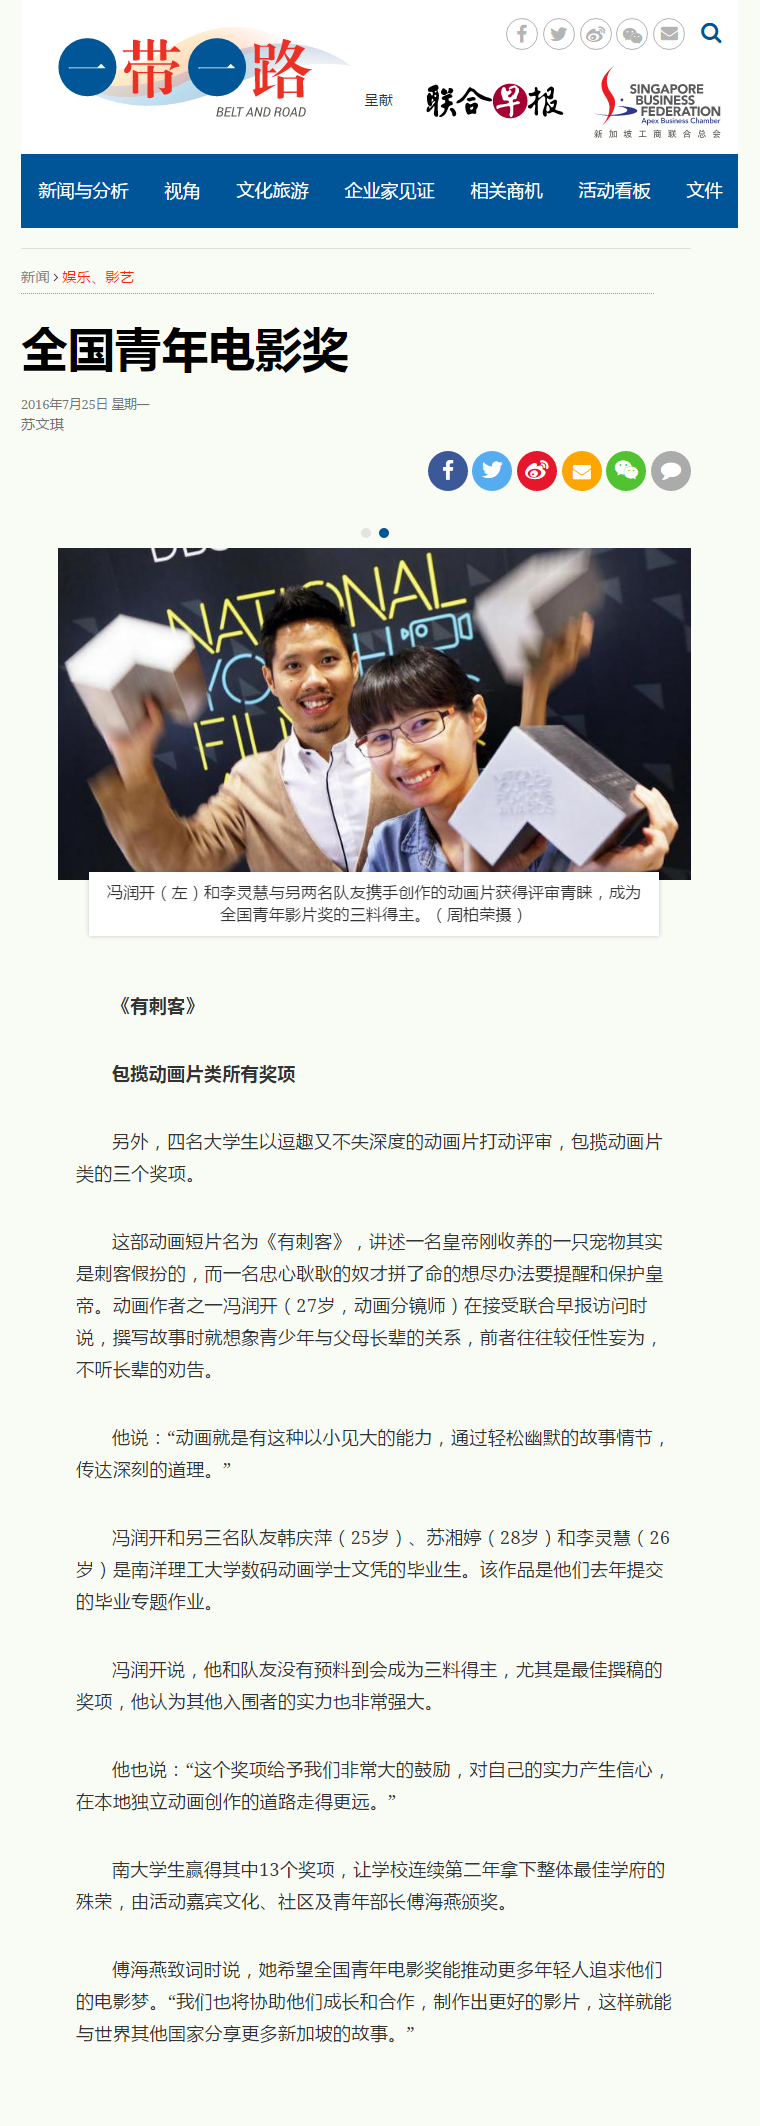 Excerpt (Screenshot) from http://beltandroad.zaobao.com/news/entertainment/story20160725-645318